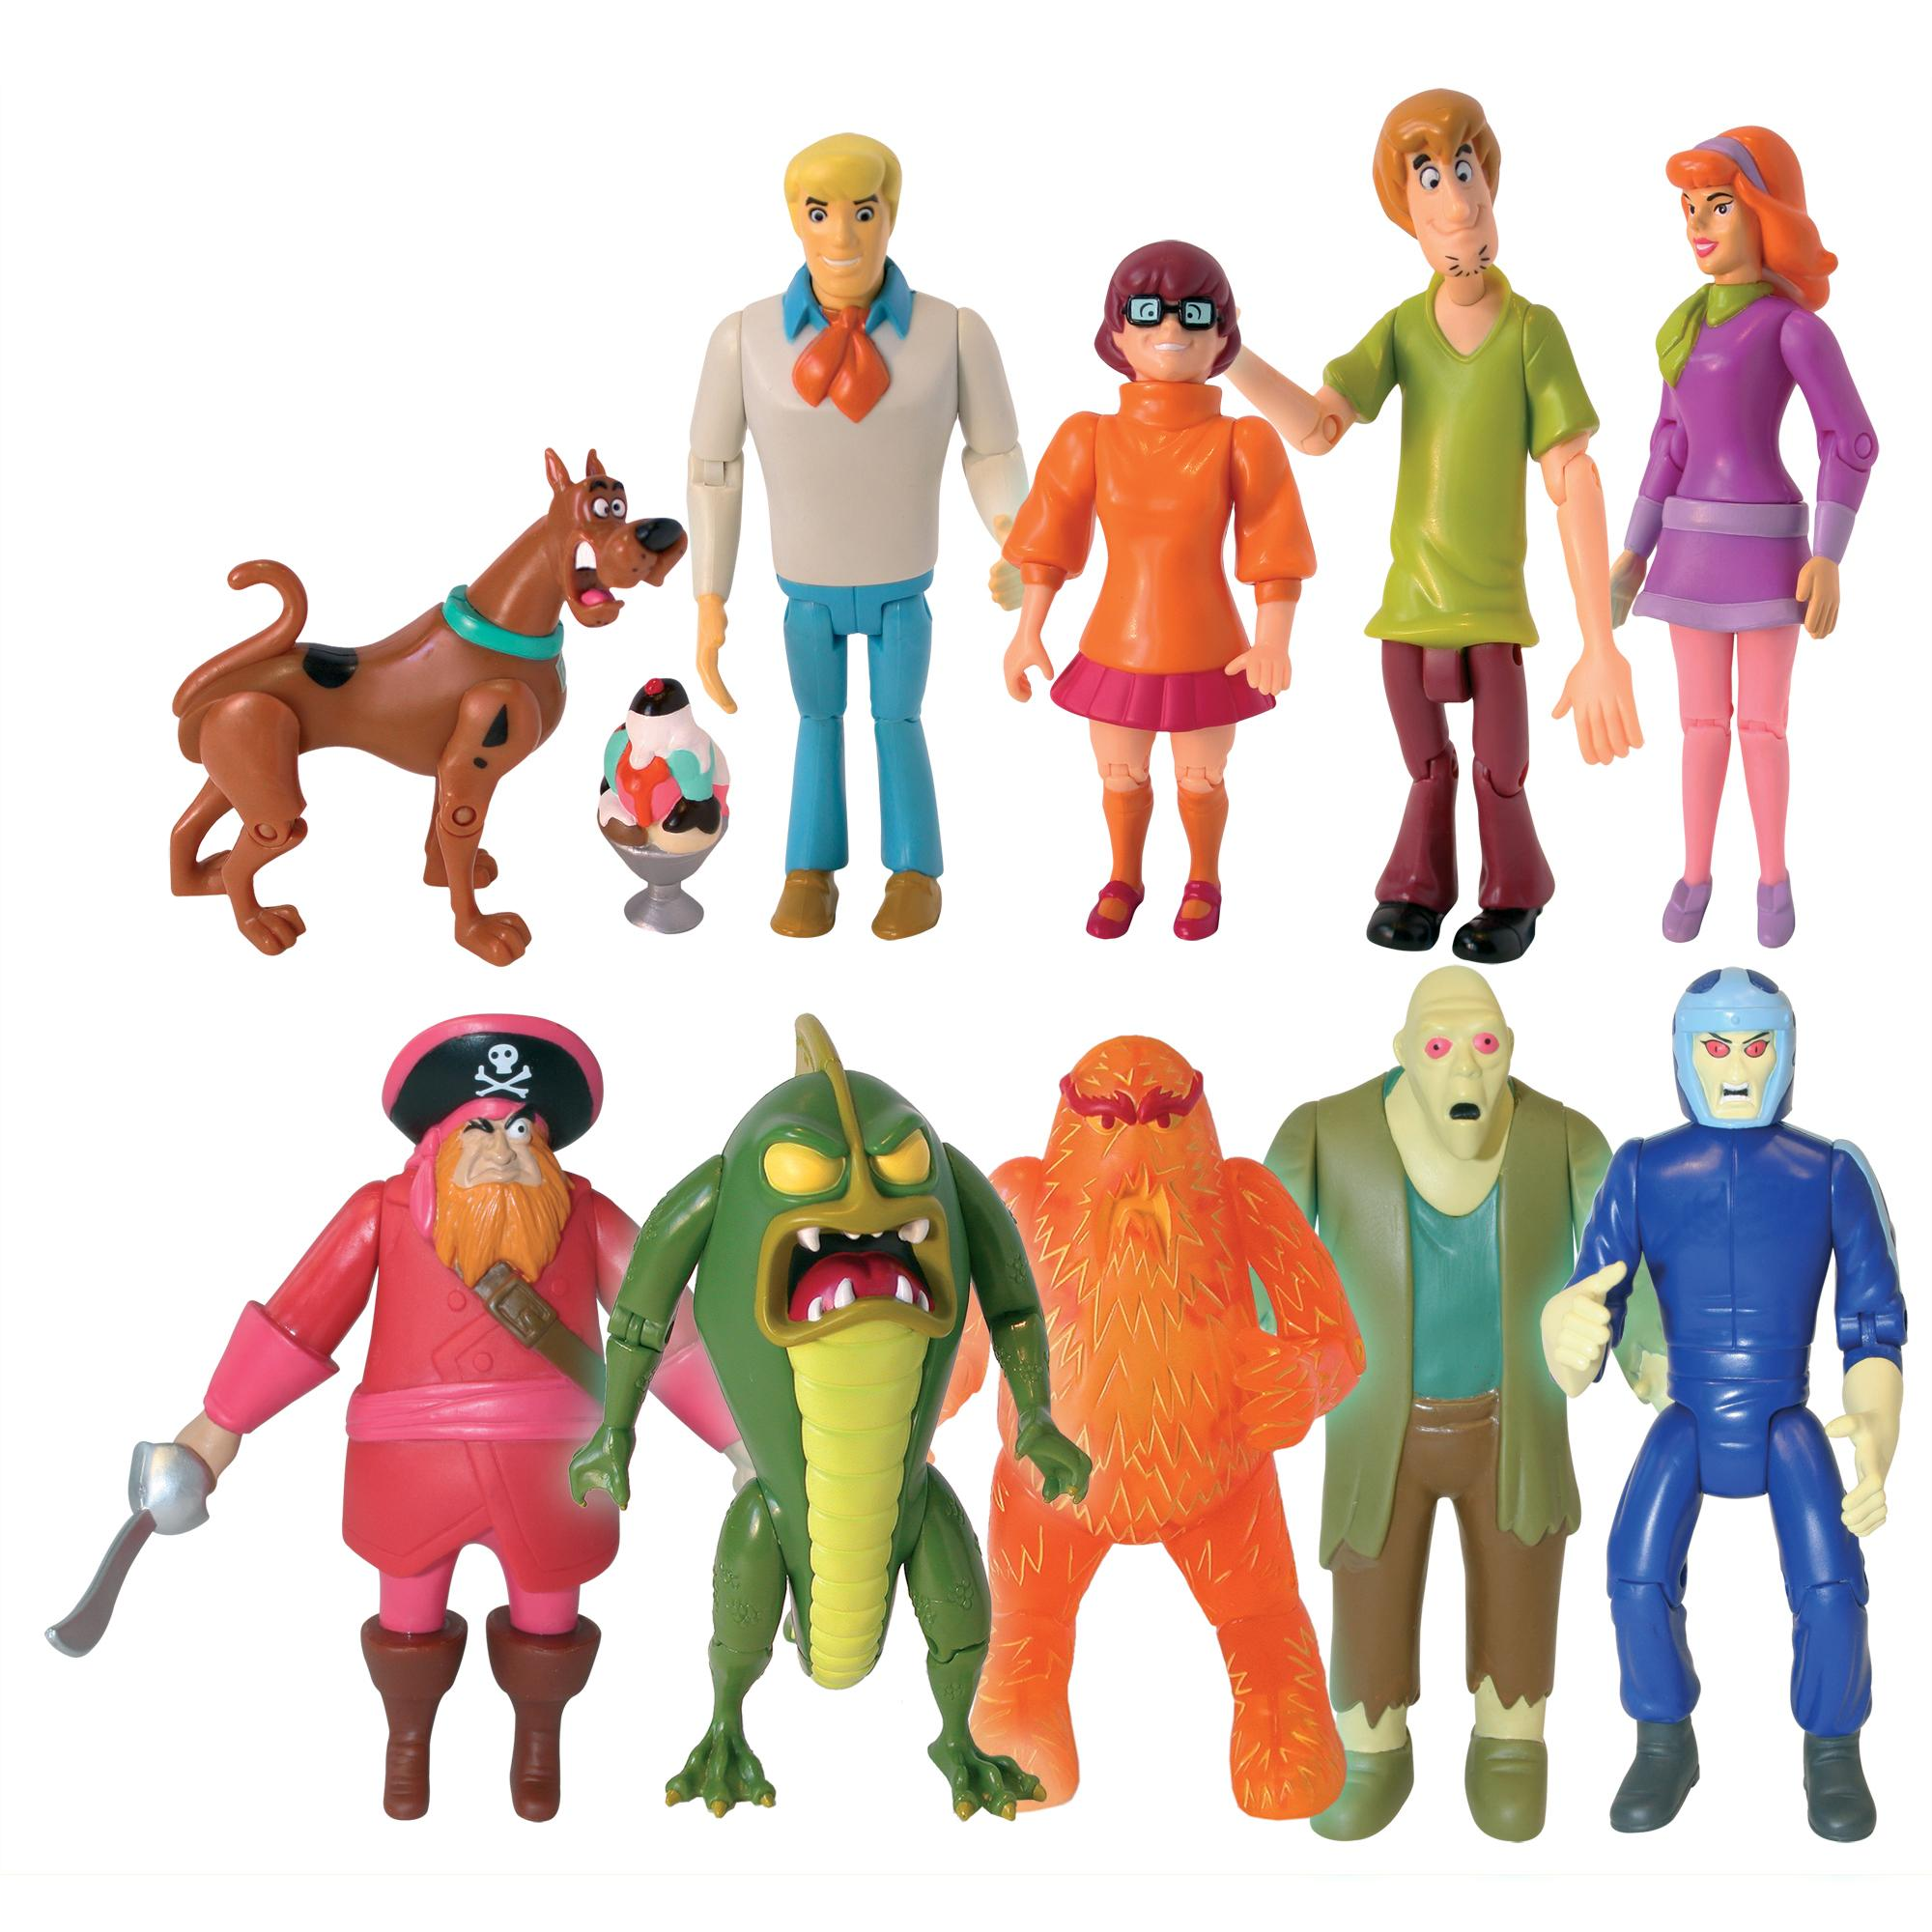 Amazon.com: Scooby Doo Monster Set Action Figure, 10 Pack: Toys